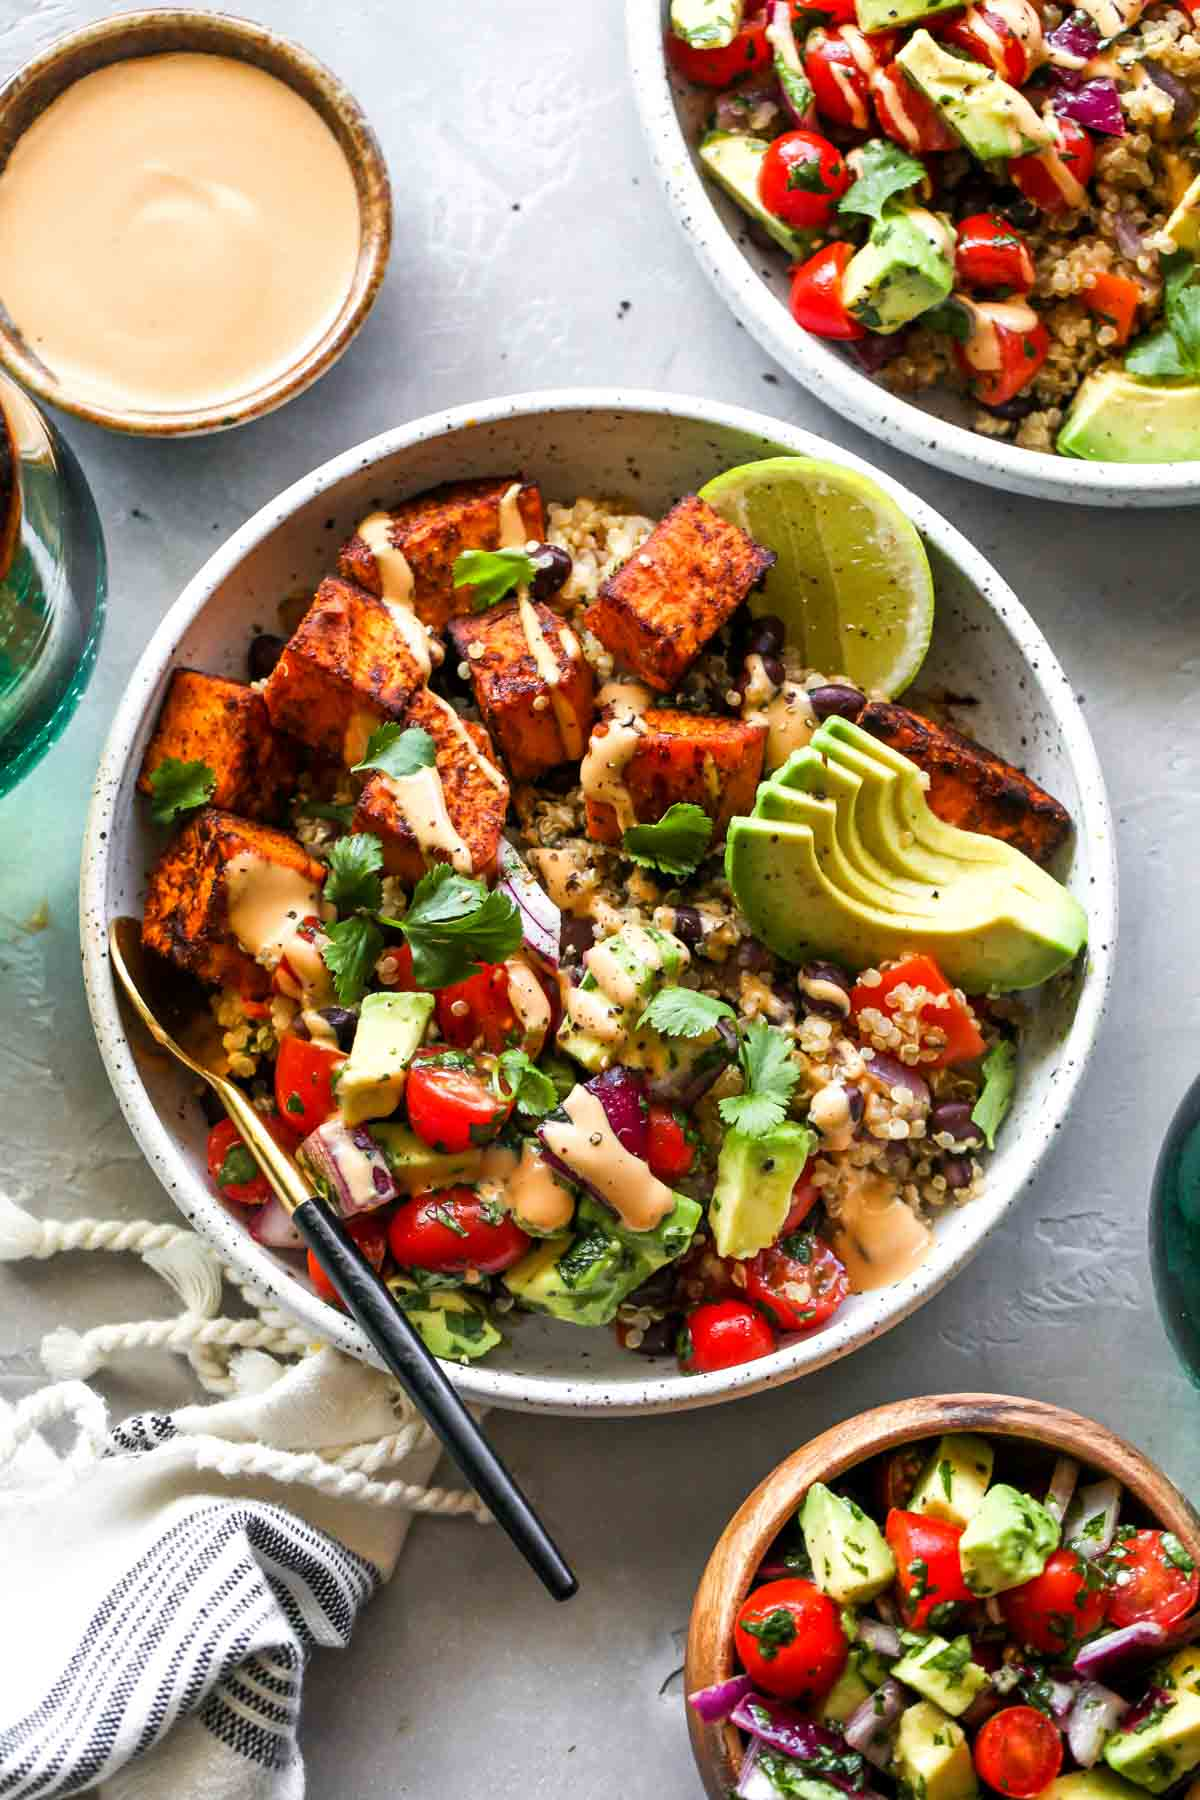 Assembled vegetarian burrito bowls with chipotle tahini sauce on the side